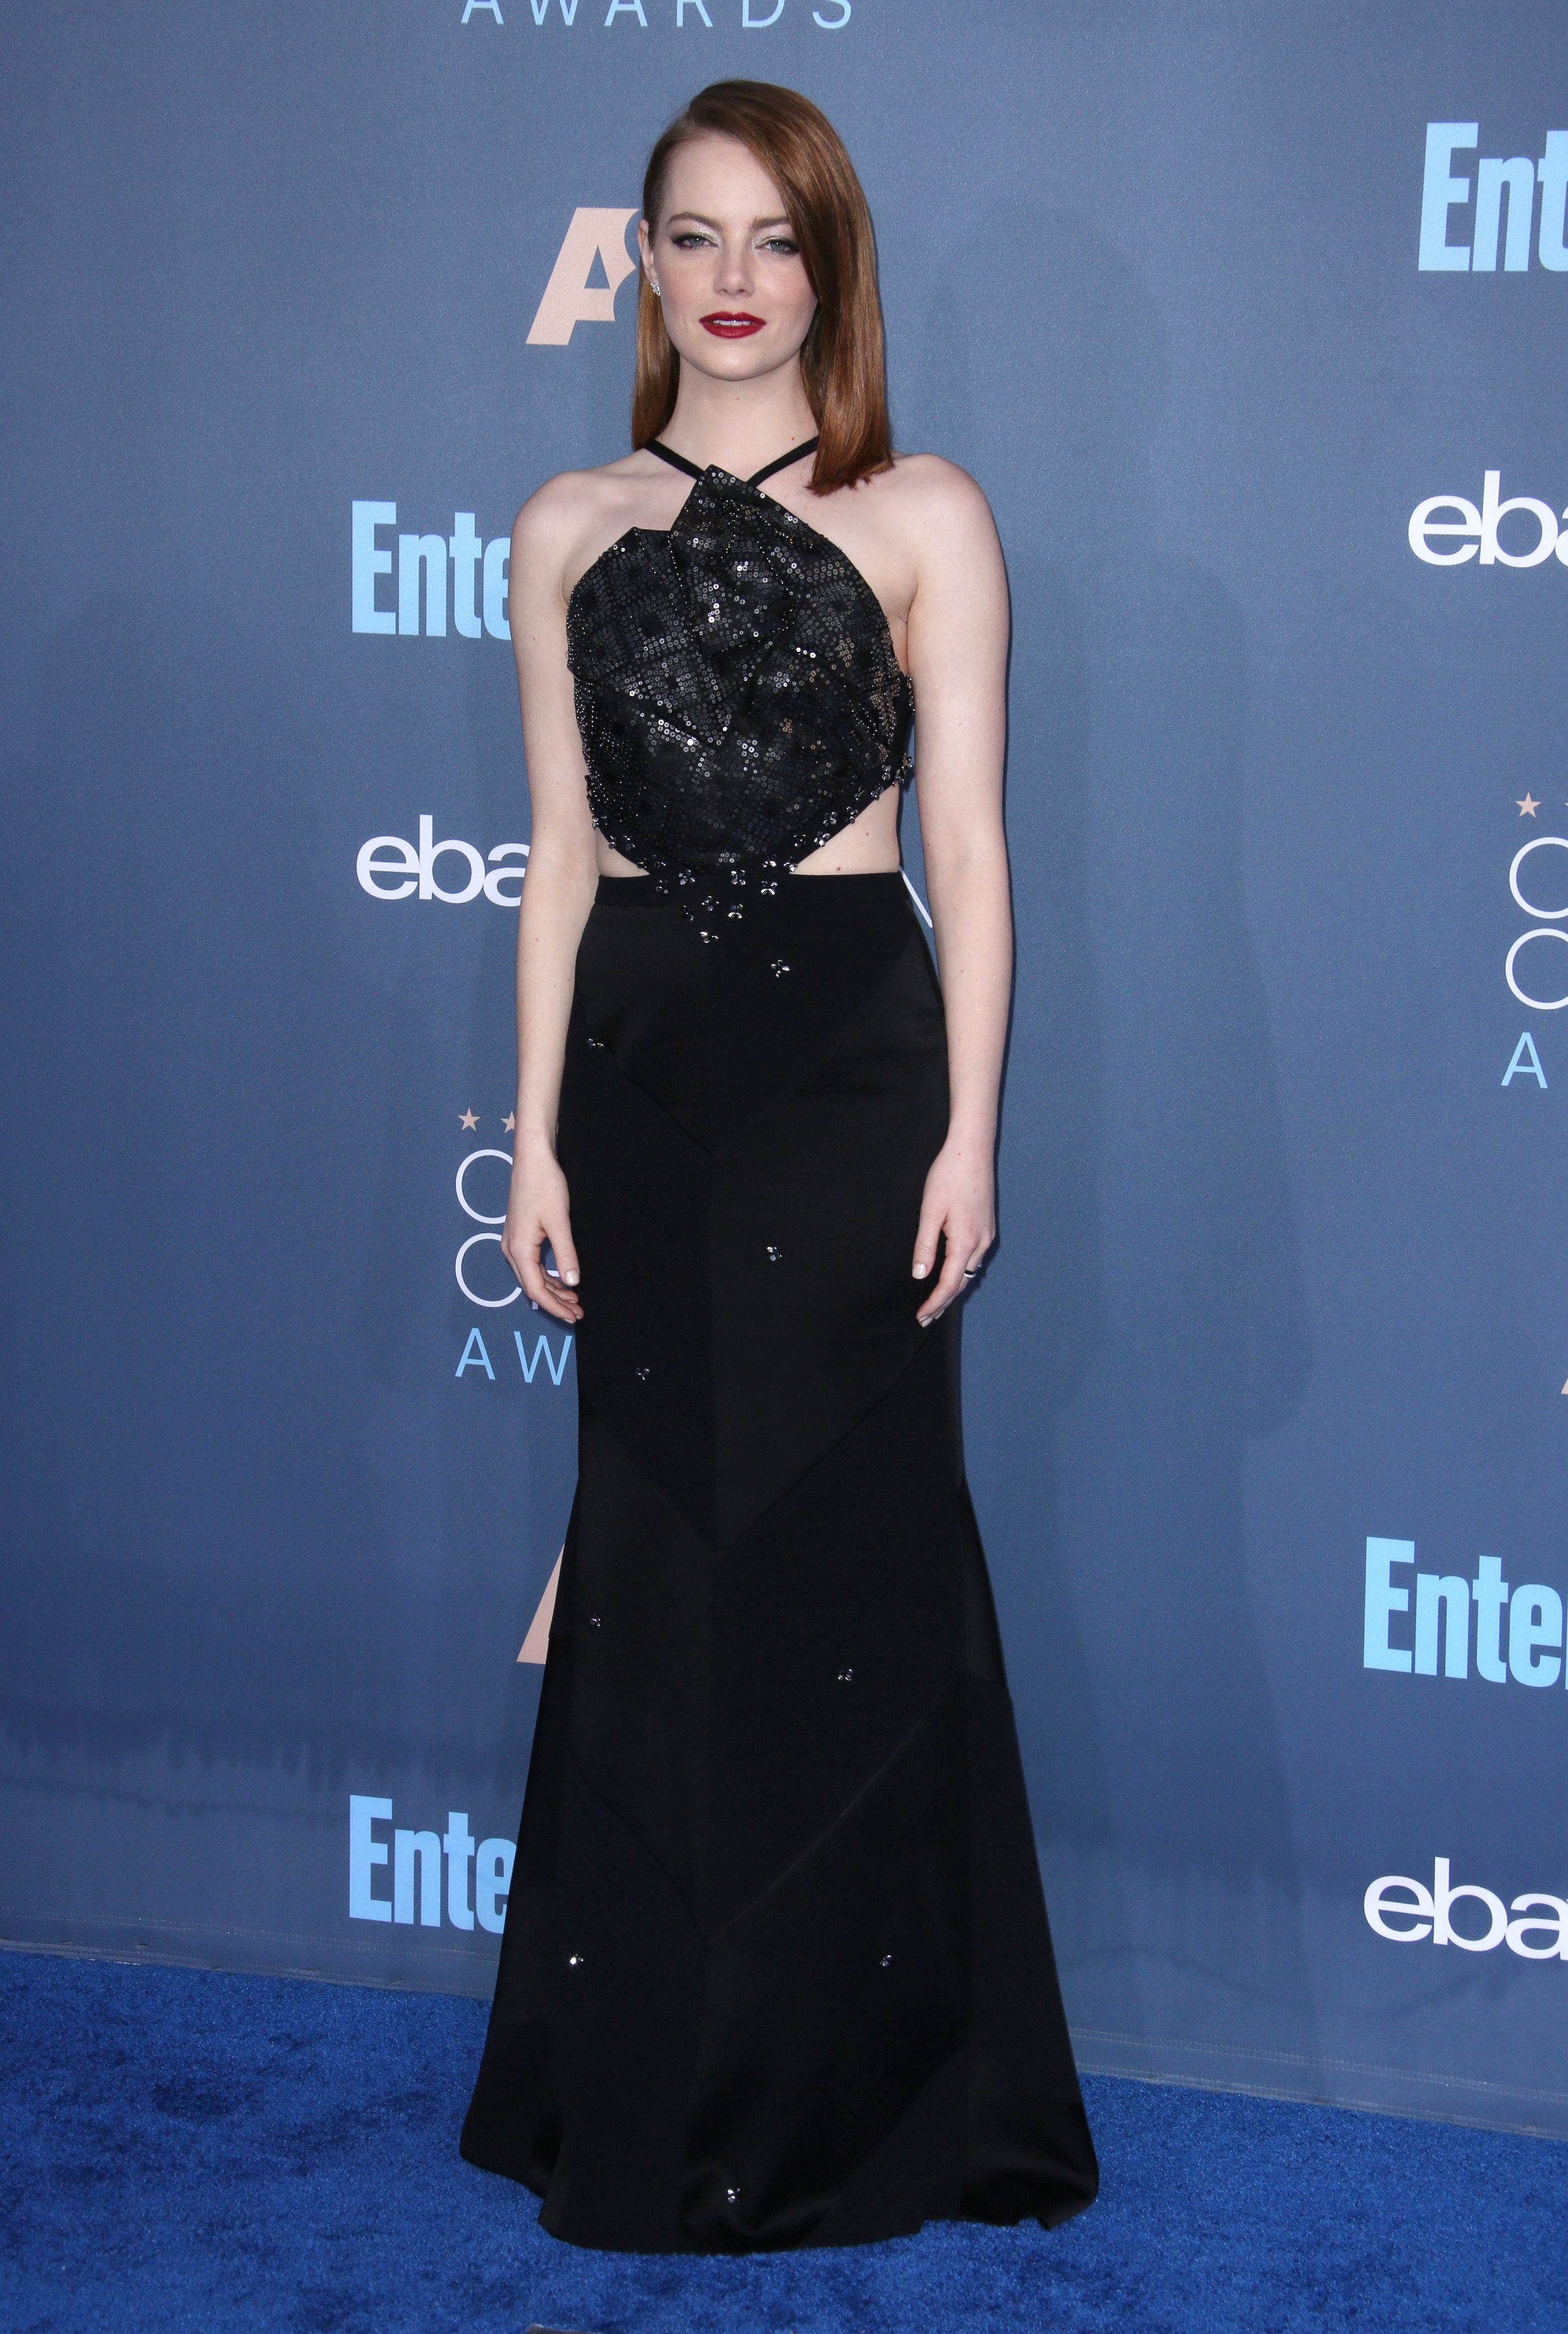 Emma Stone at the 22nd Annual Critics' Choice Awards, 2016. Photo by Matt Baron/BEI/Shutterstock